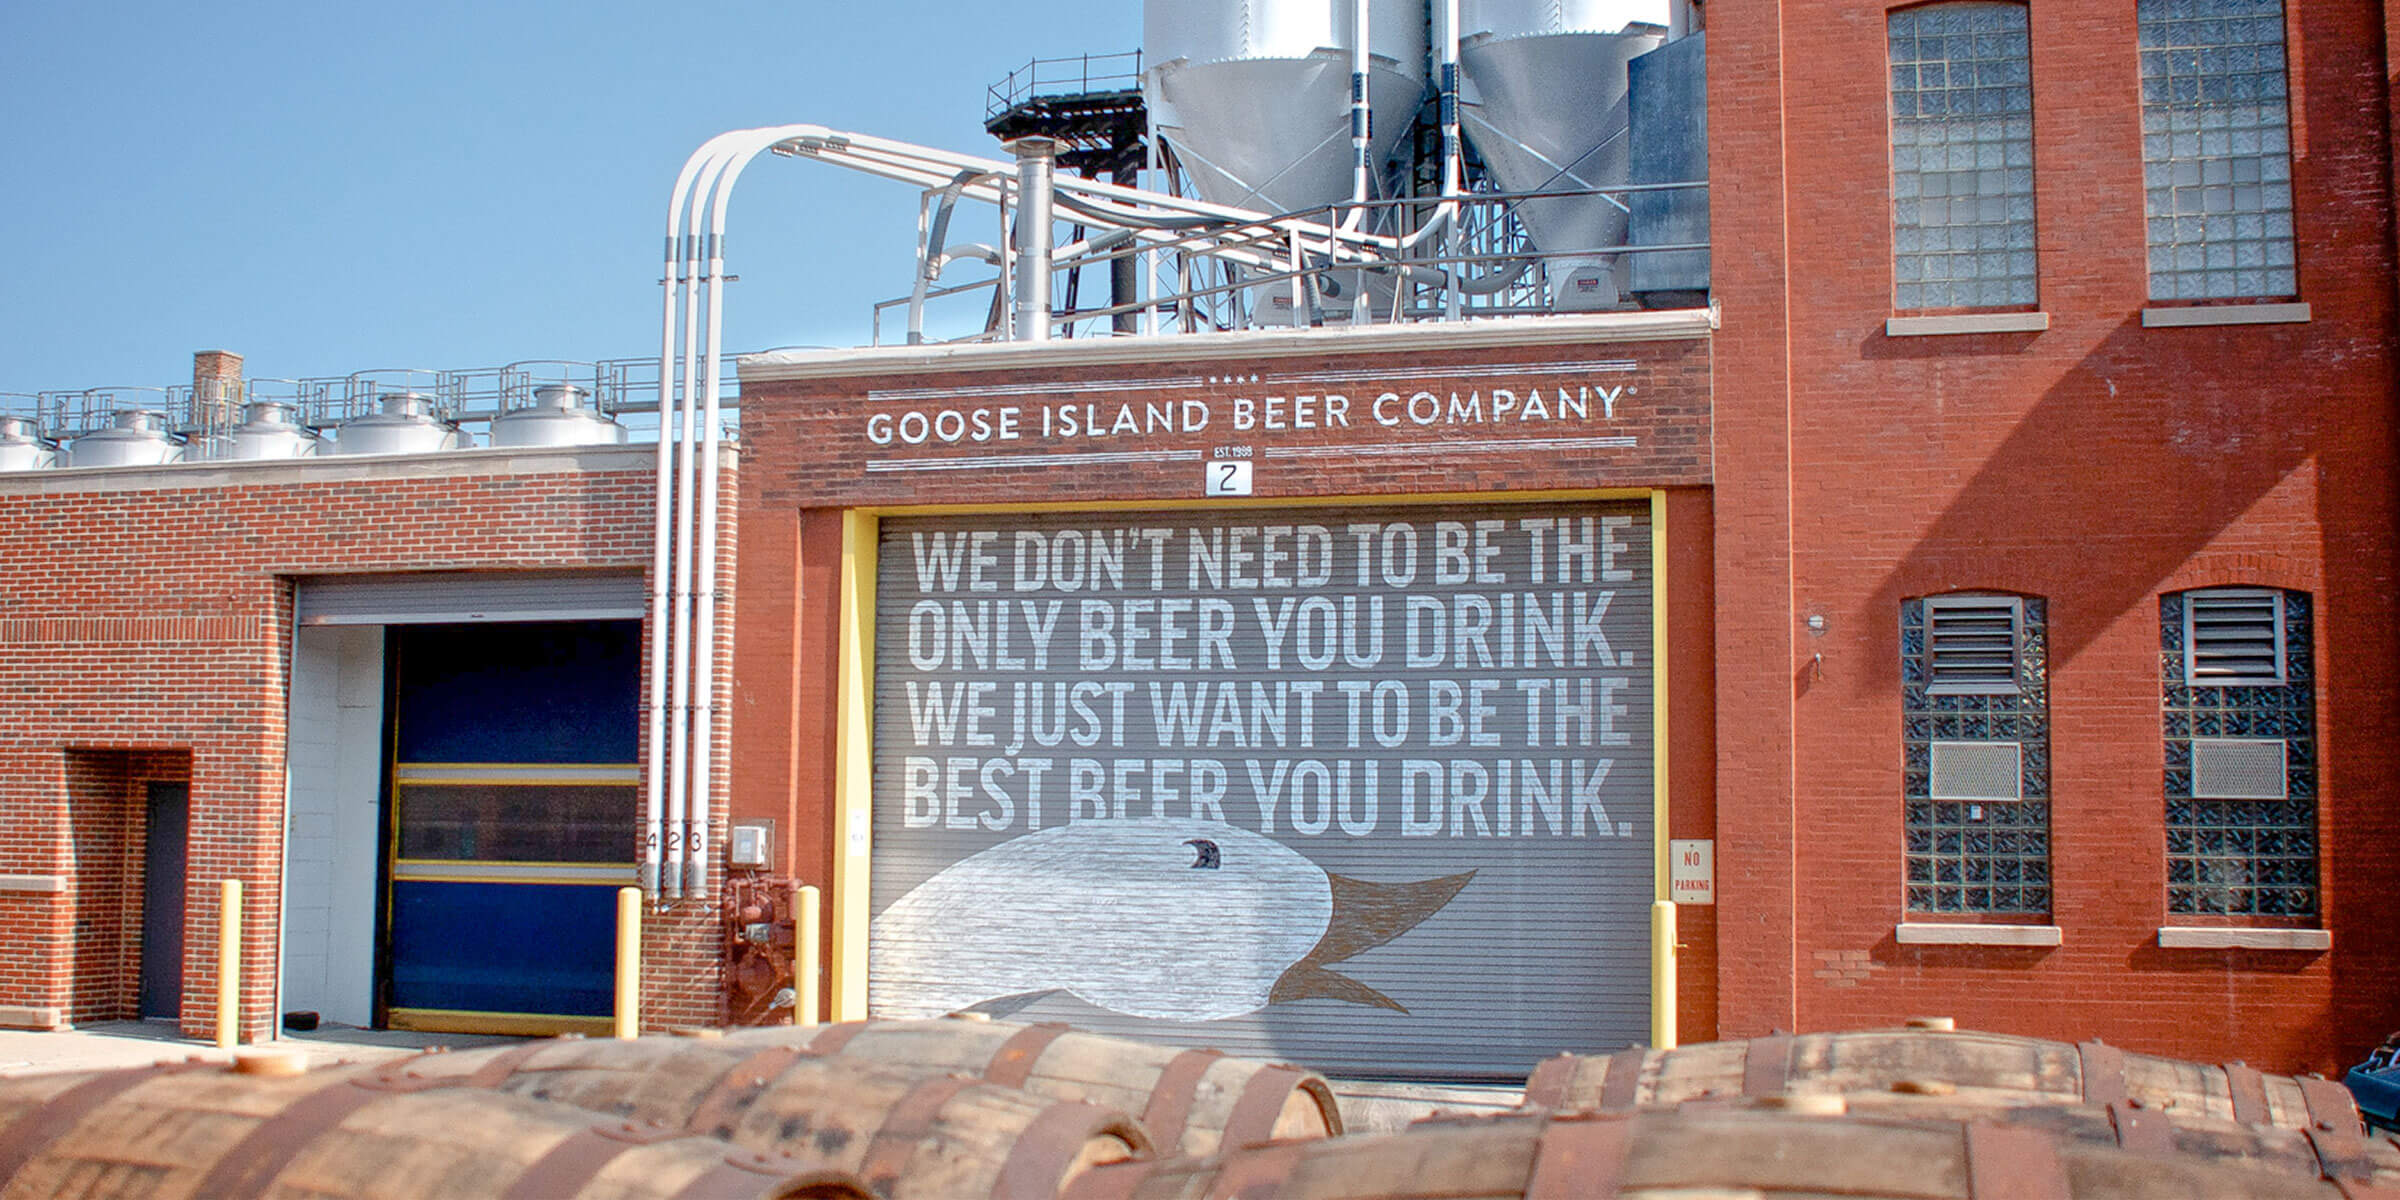 Outside the Goose Island Beer Co. Fulton Street location in Chicago, Illinois